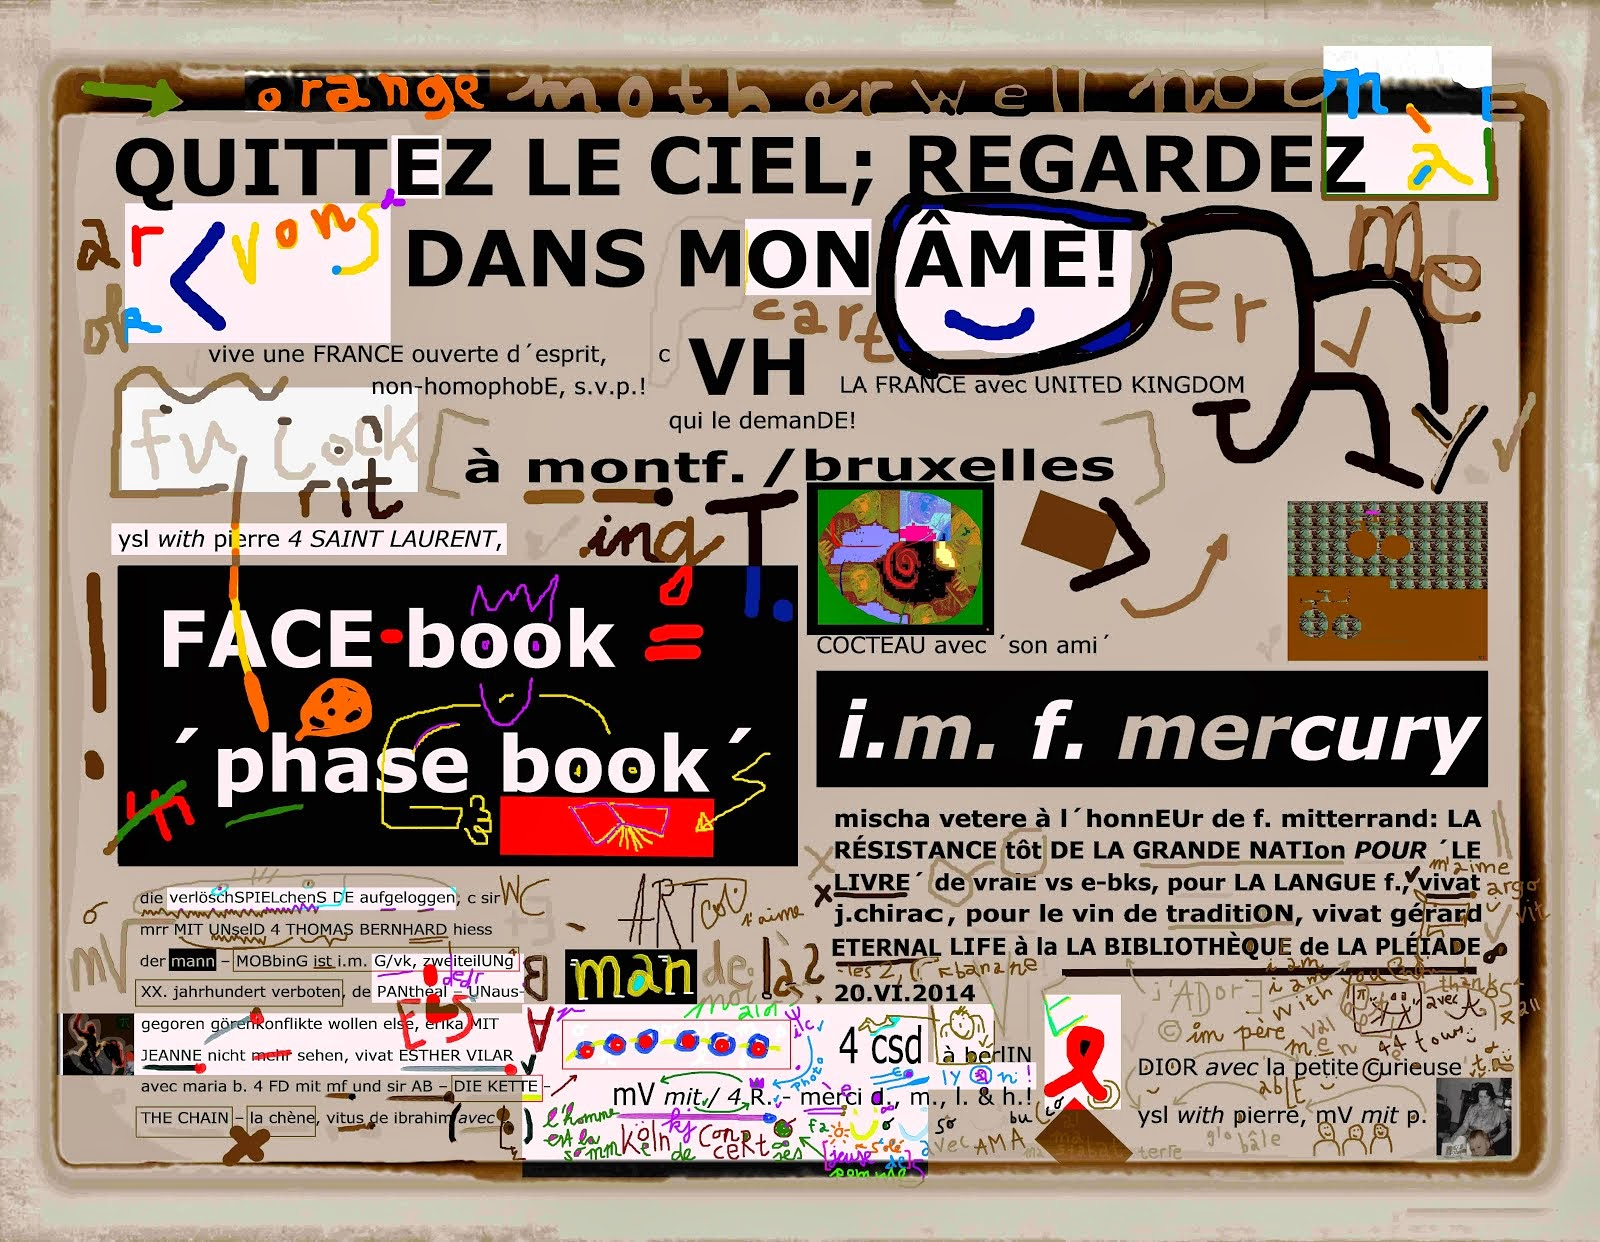 RÉSISTANCE de totalE - preserve books and archives by all mean - ´MASQUES´ 4 mischa vetere critical